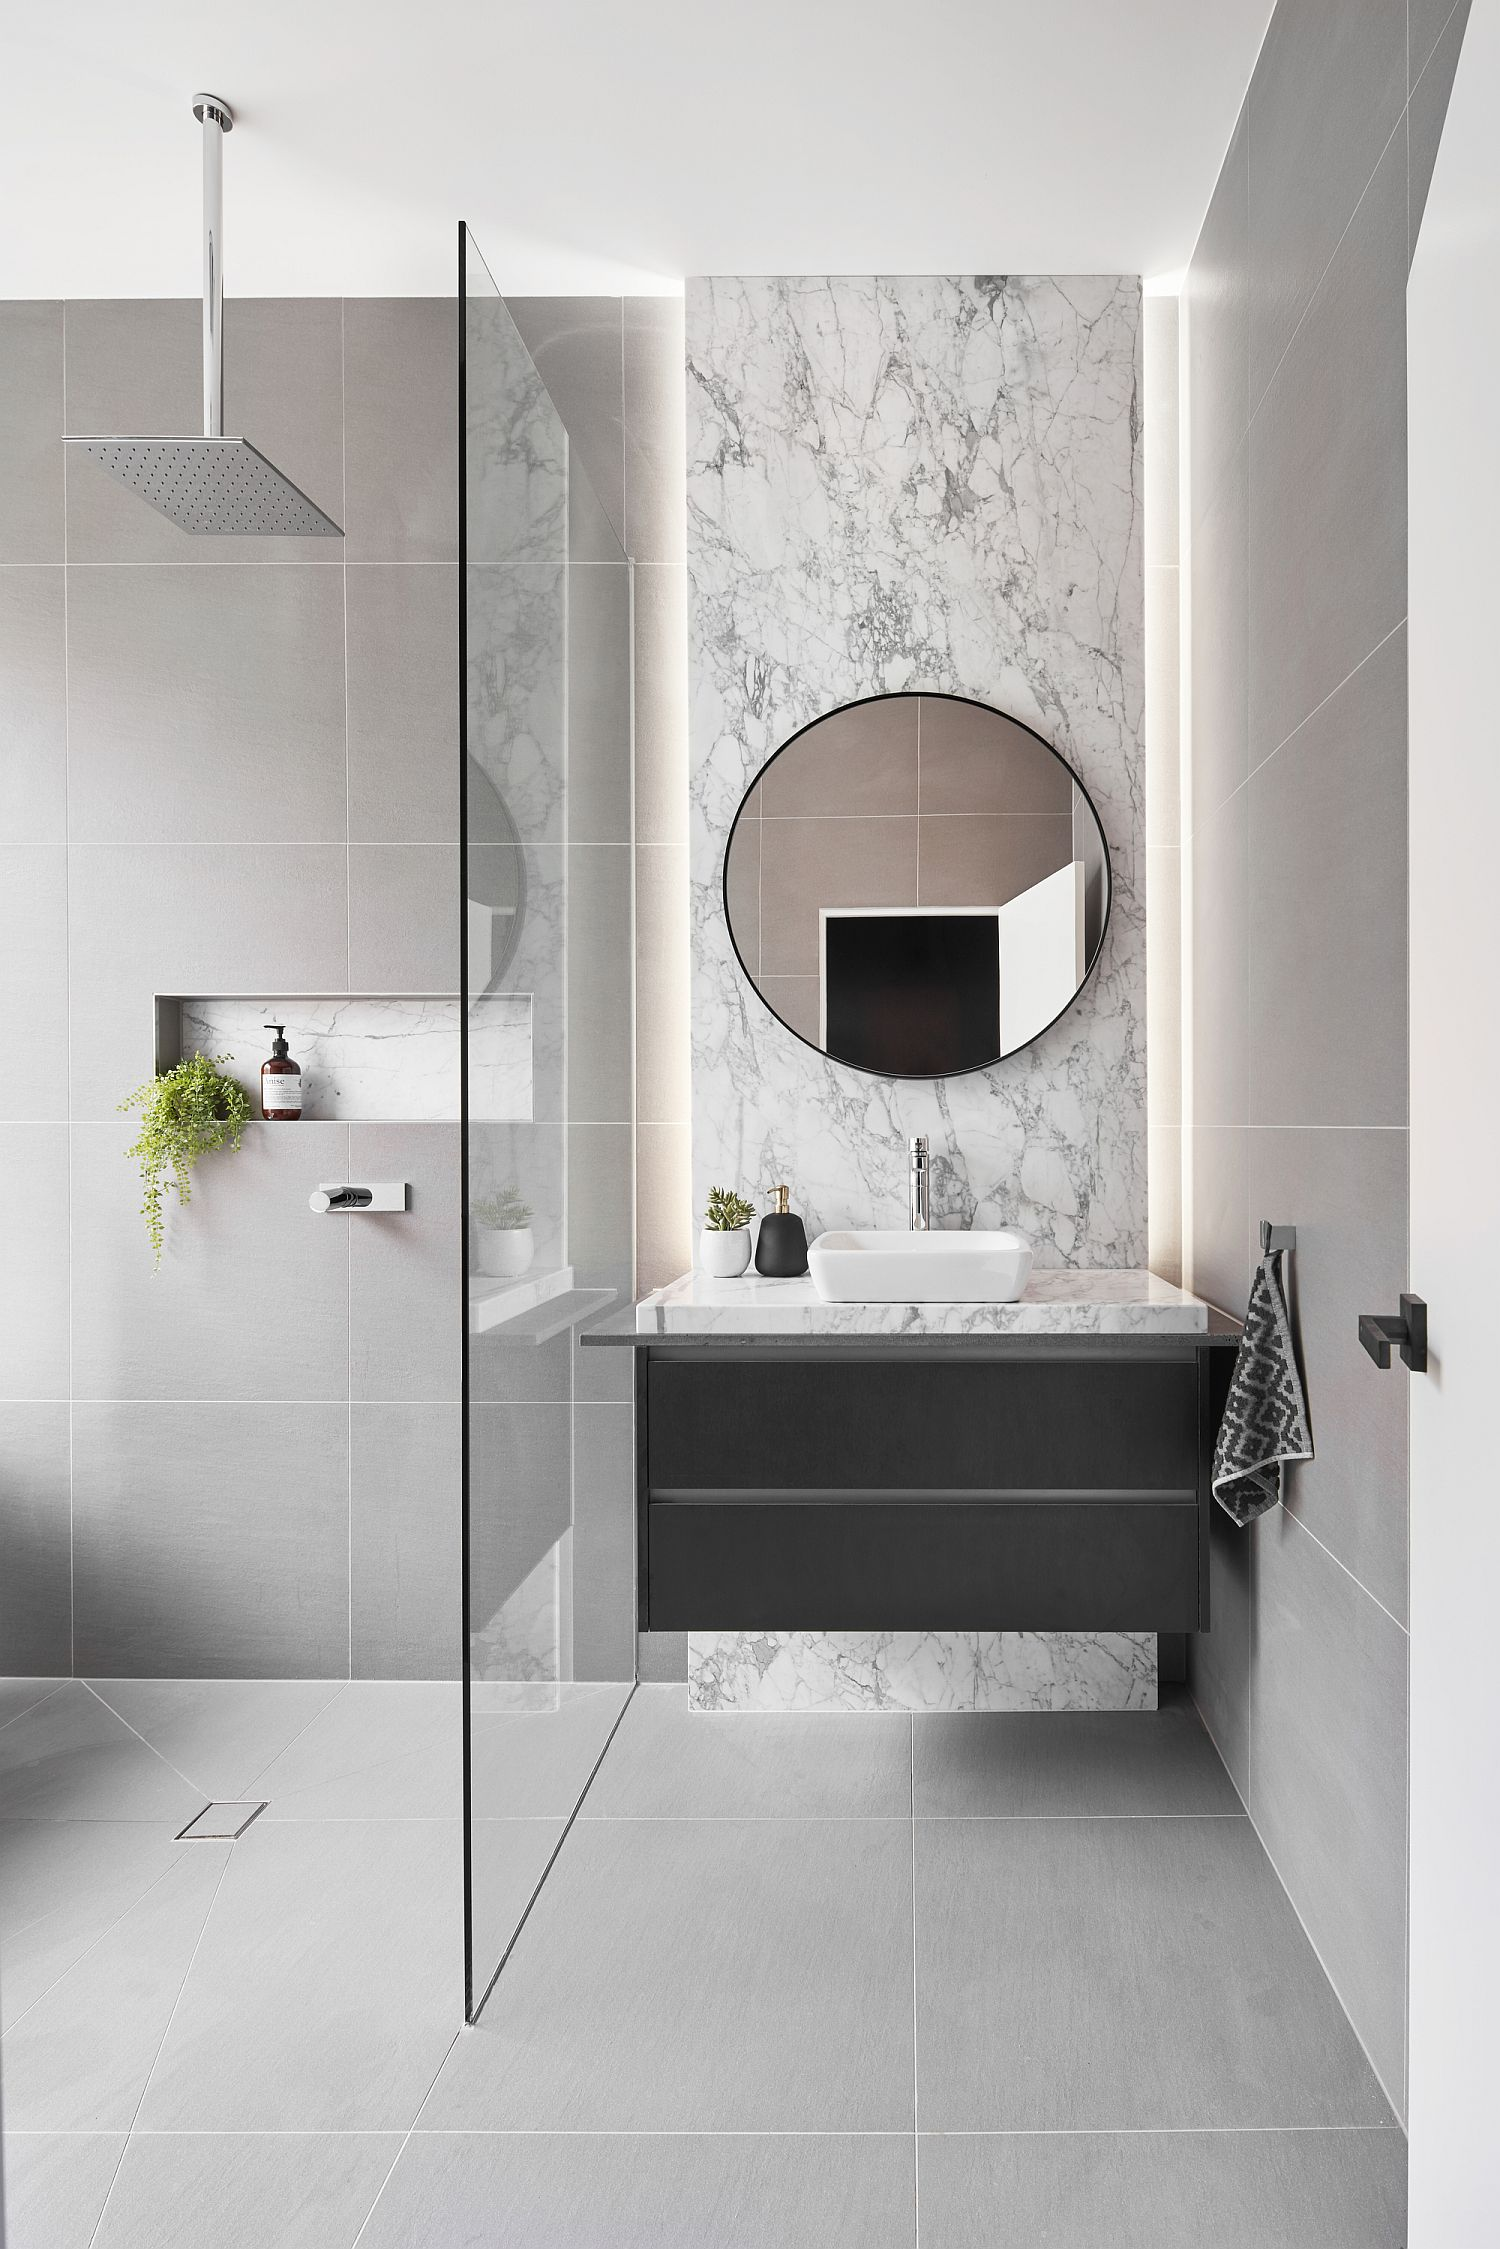 Marble brings sophisticaton to the minimal modern bathroom